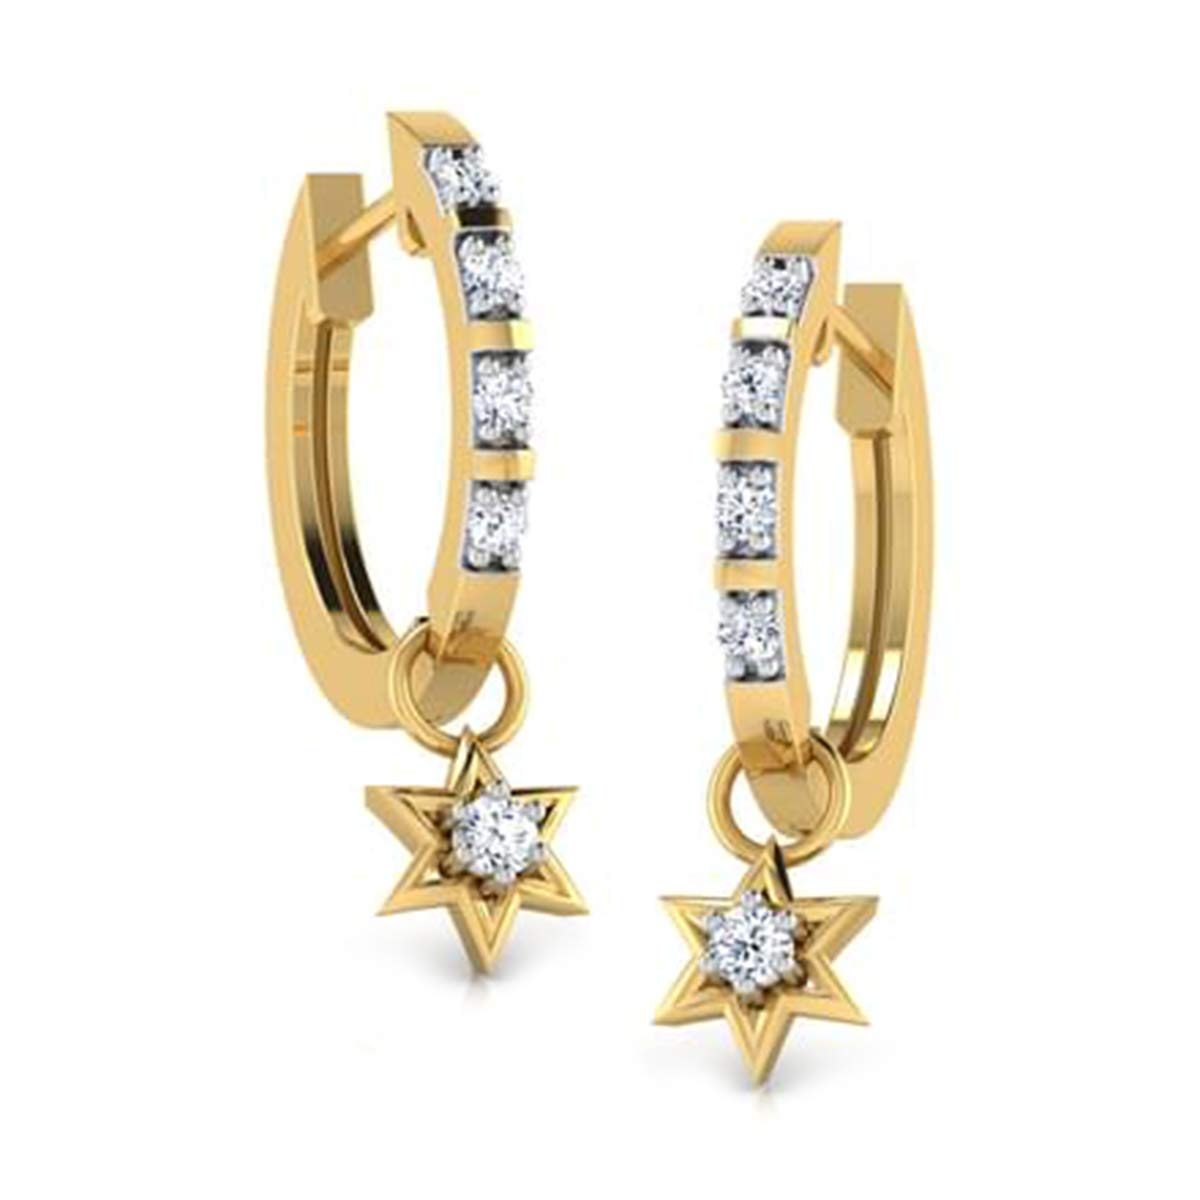 0.25 Ct Round Cut Simulated Diamond Clip On Hoop Earrings 14K Yellow Gold